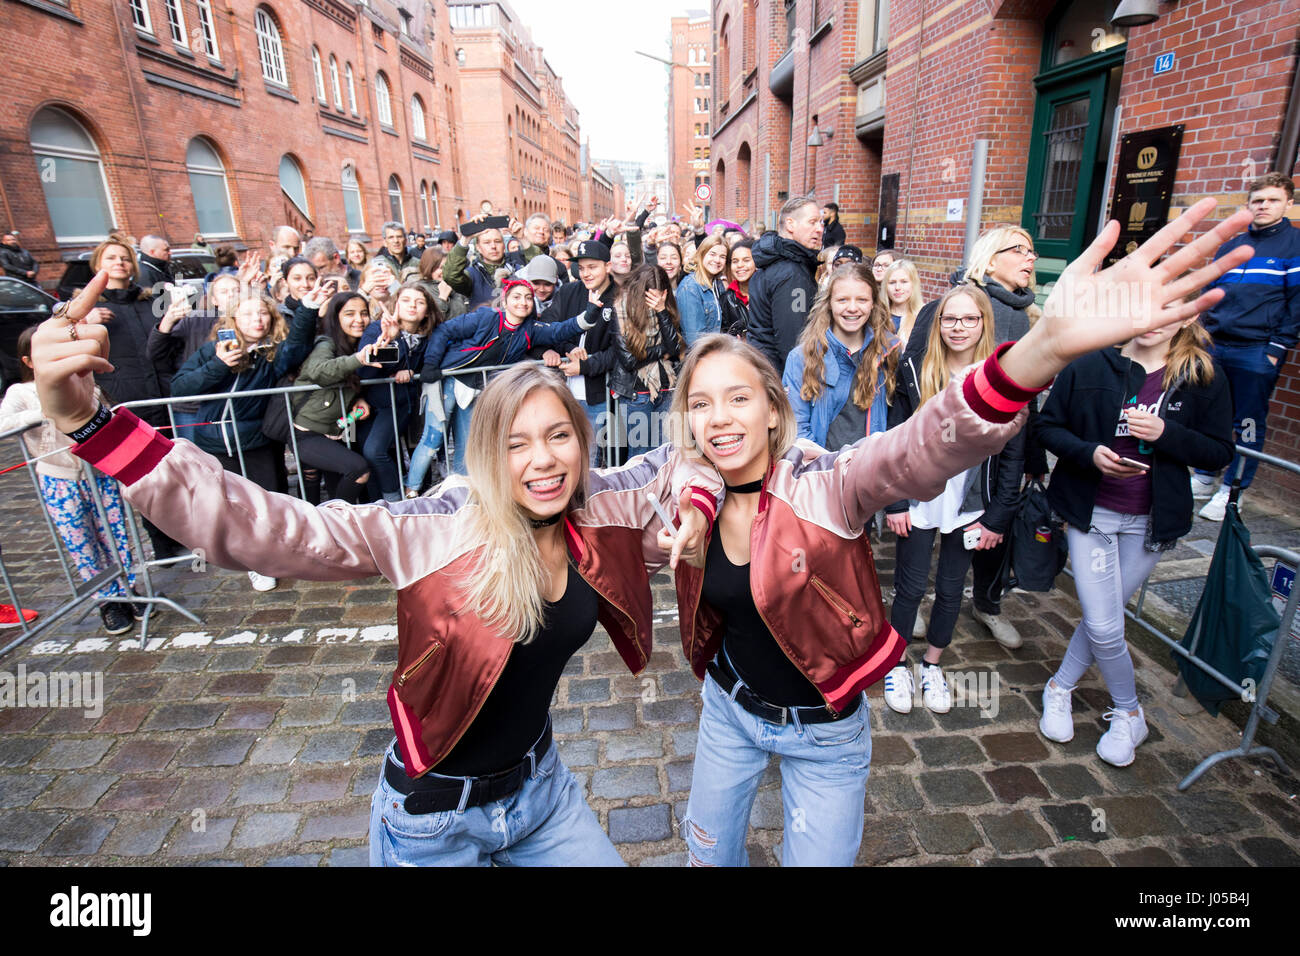 The musical and social media stars lena l and lisa stock the musical and social media stars lena l and lisa photographed during their first own fan meet and greet in hamburg germany 10 april 2017 m4hsunfo